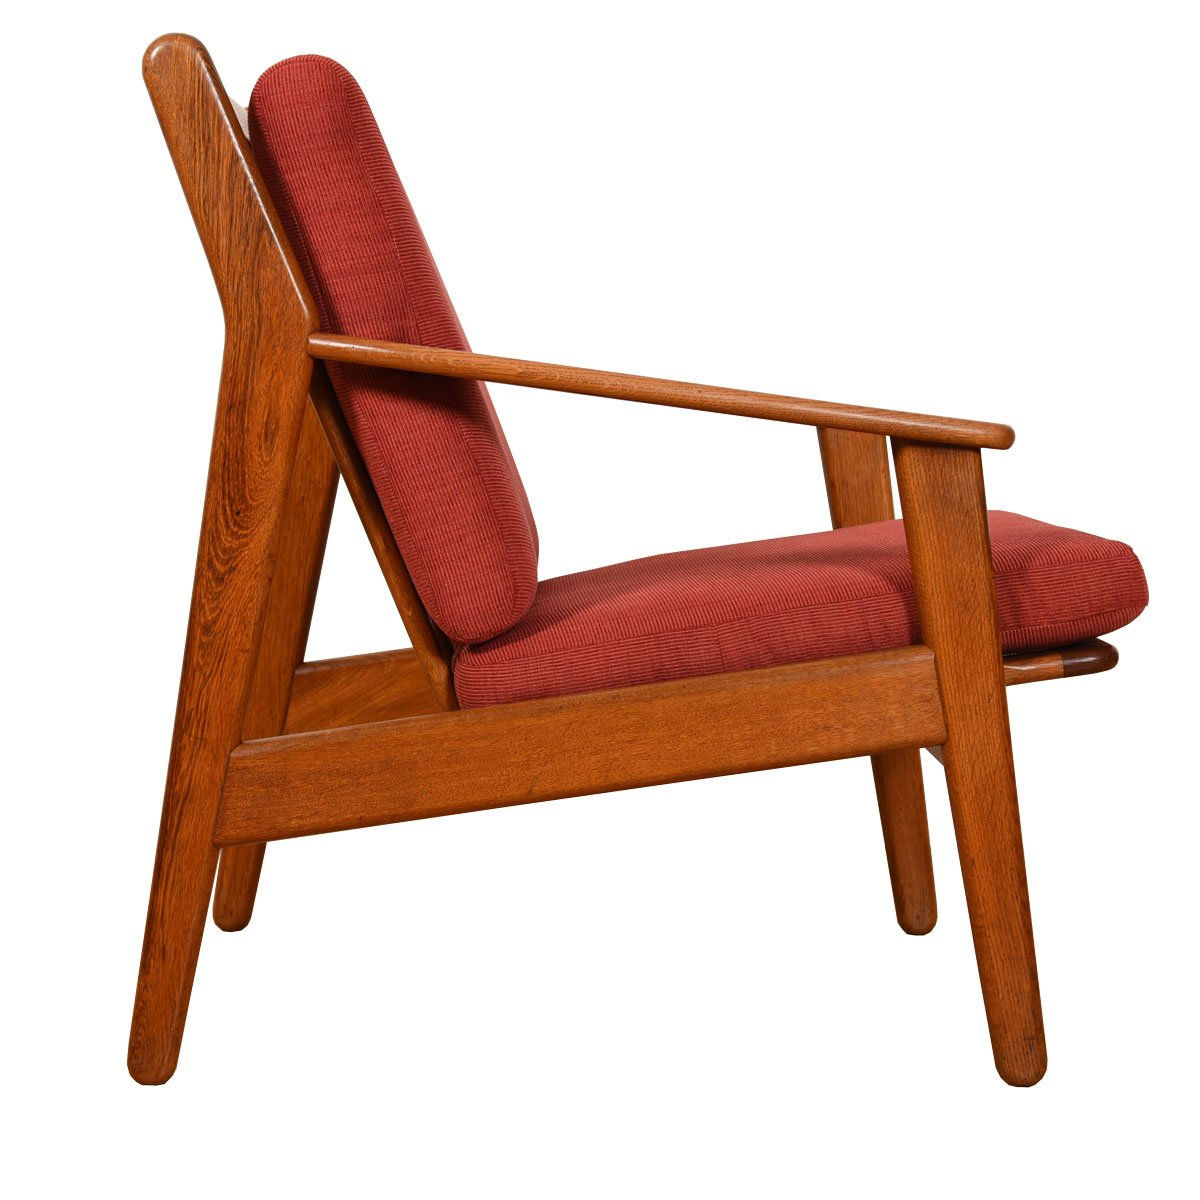 Danish Modern Easy Chair by FDB